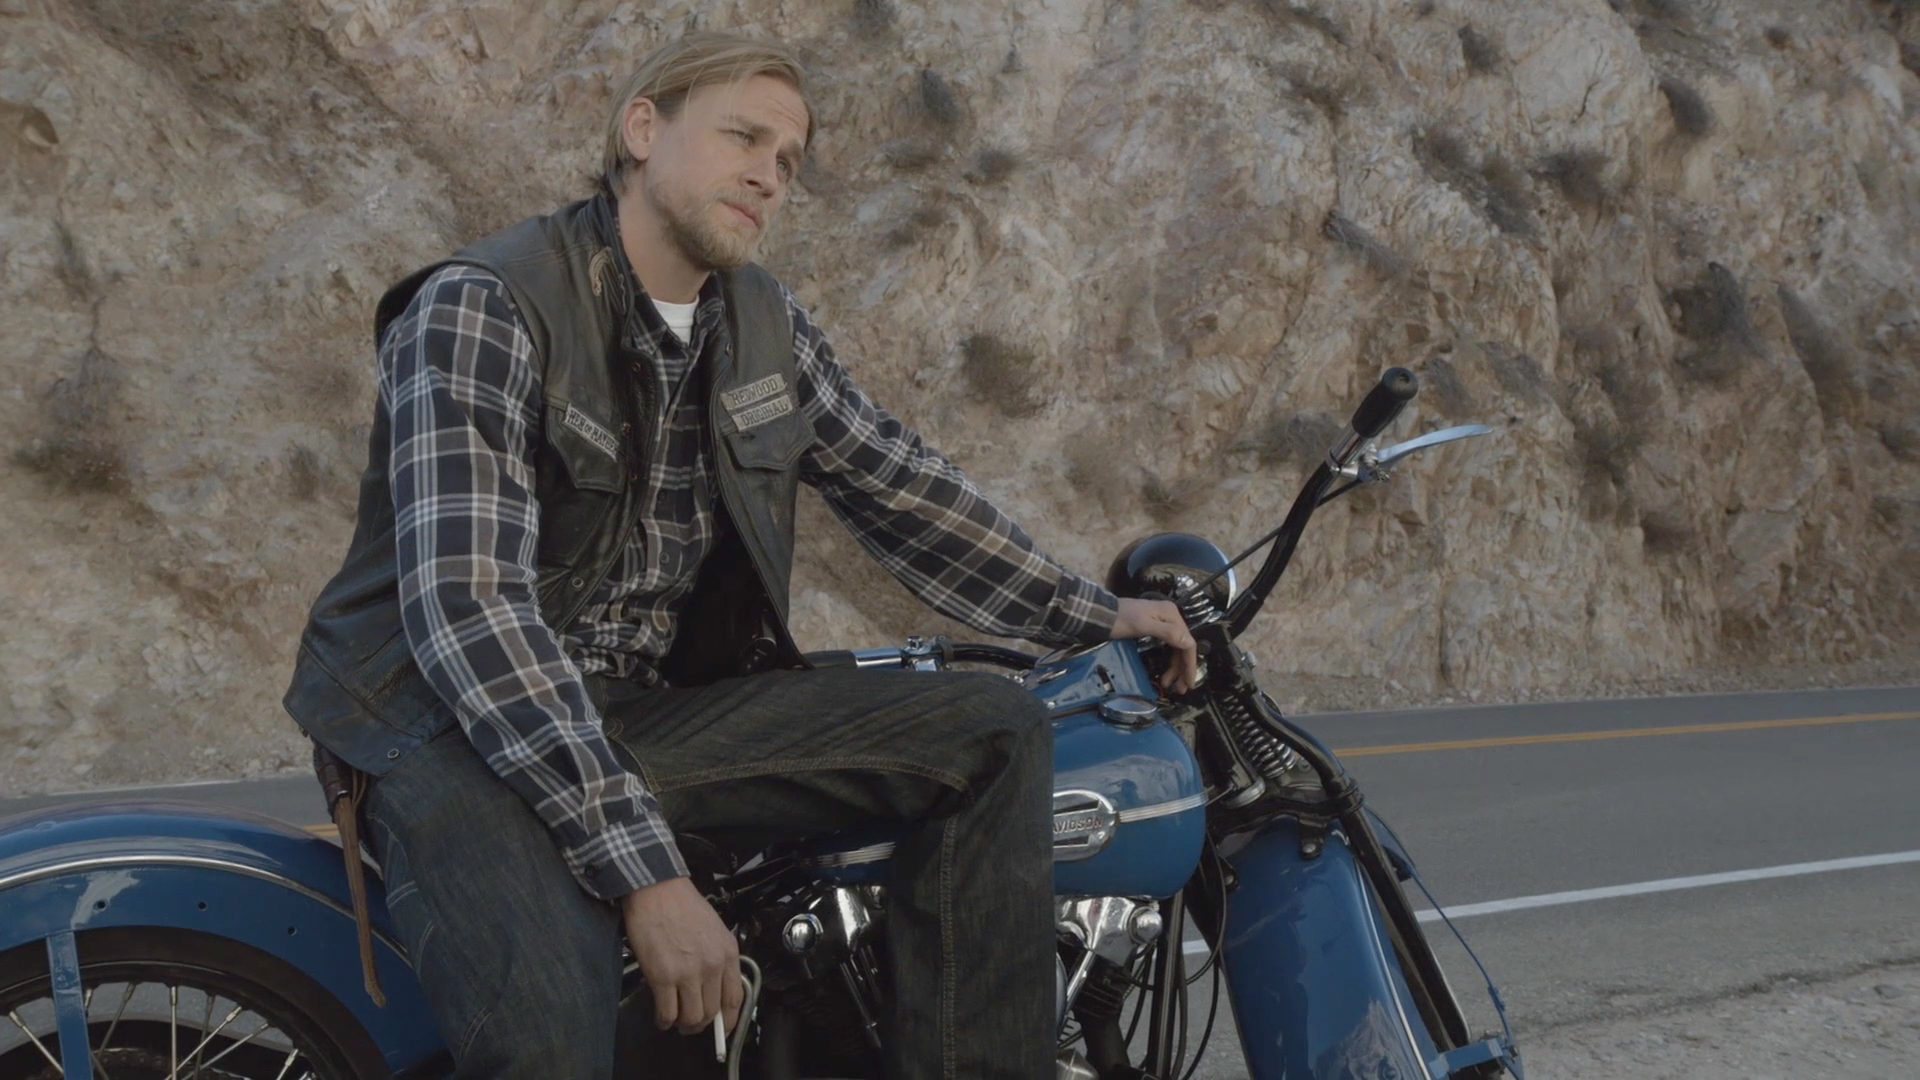 'Sons of Anarchy' Up Close